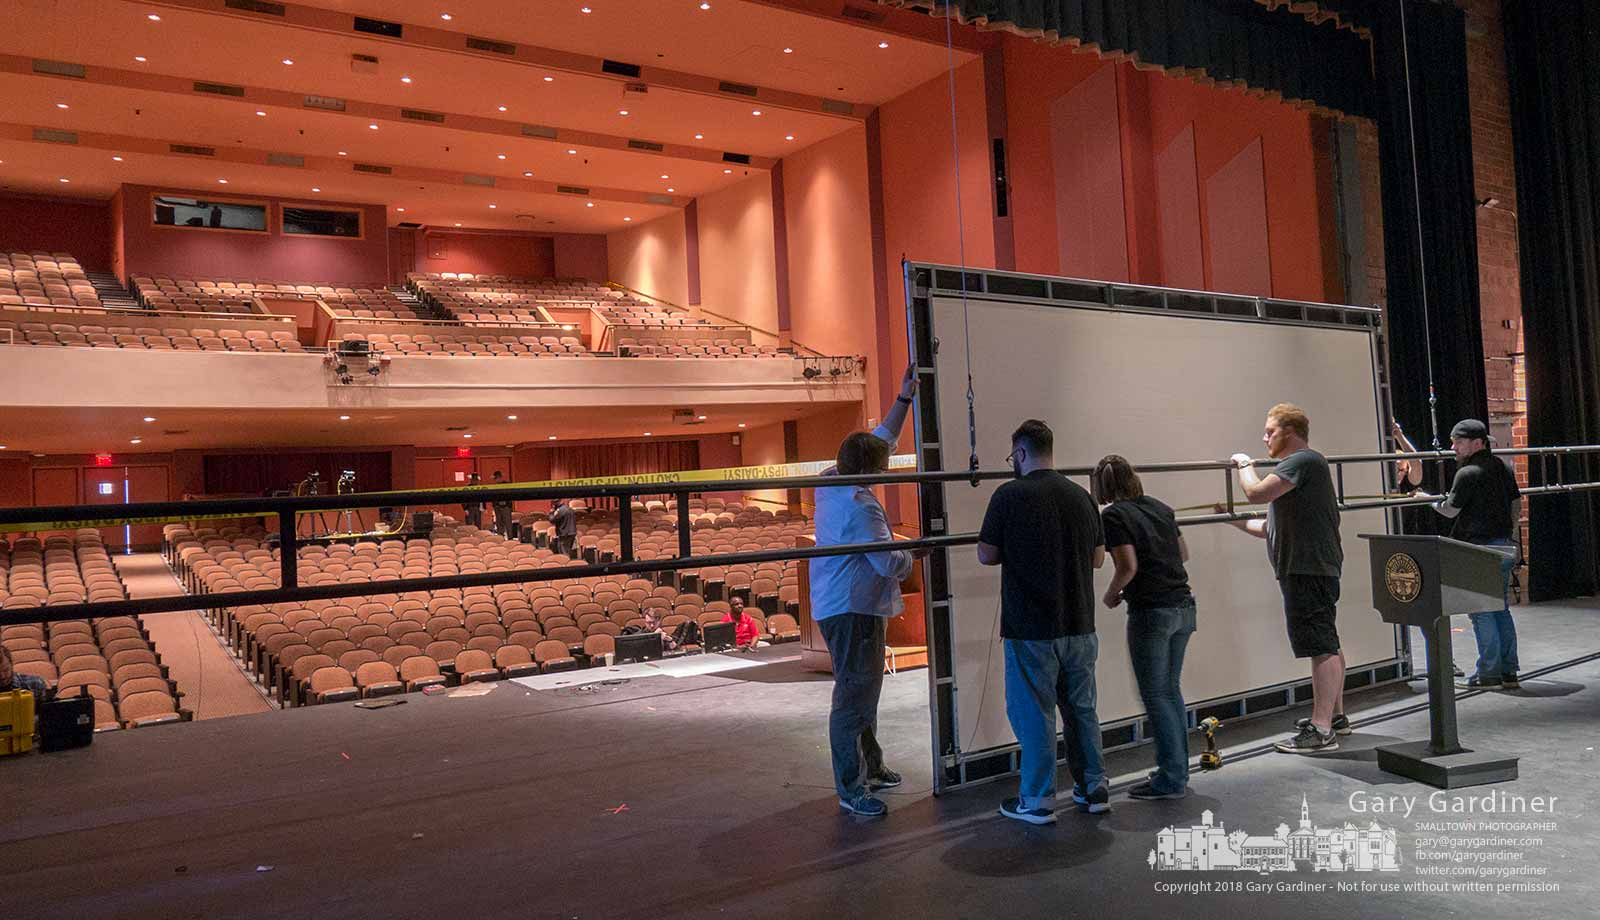 Stagehands attach a screen to rigging on the stage at Fritsche Hall at Otterbein University where Ohio Gov. John Kasich will give his final State of the State speech Tuesday. My Final Photo for March 5, 2018.